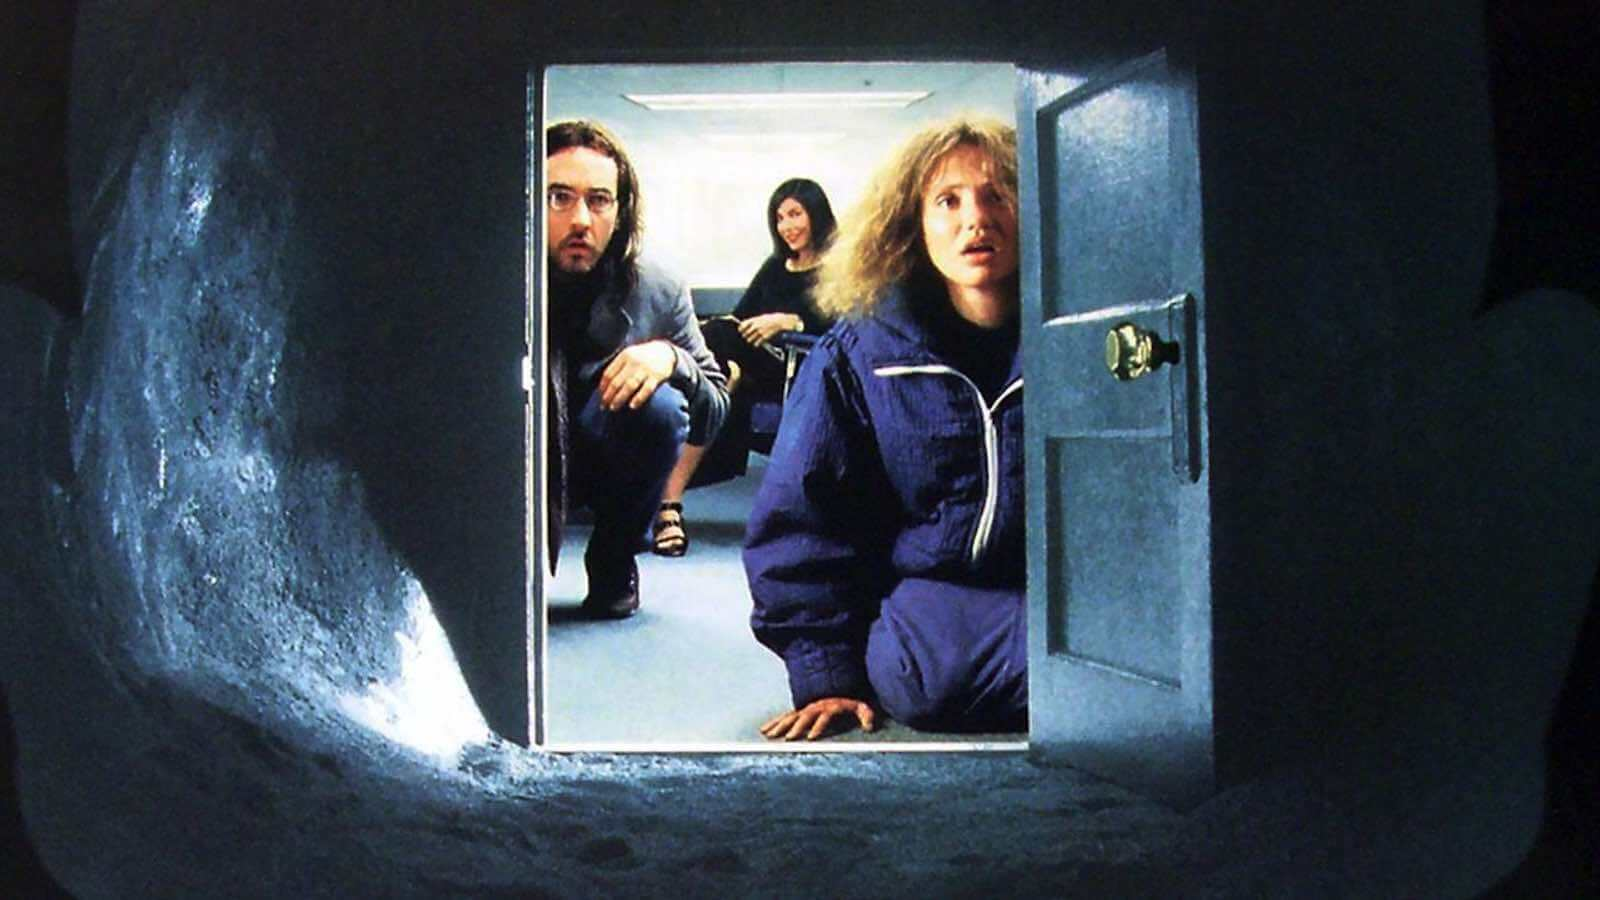 Dark Comedy Movies - Being John Malkovich